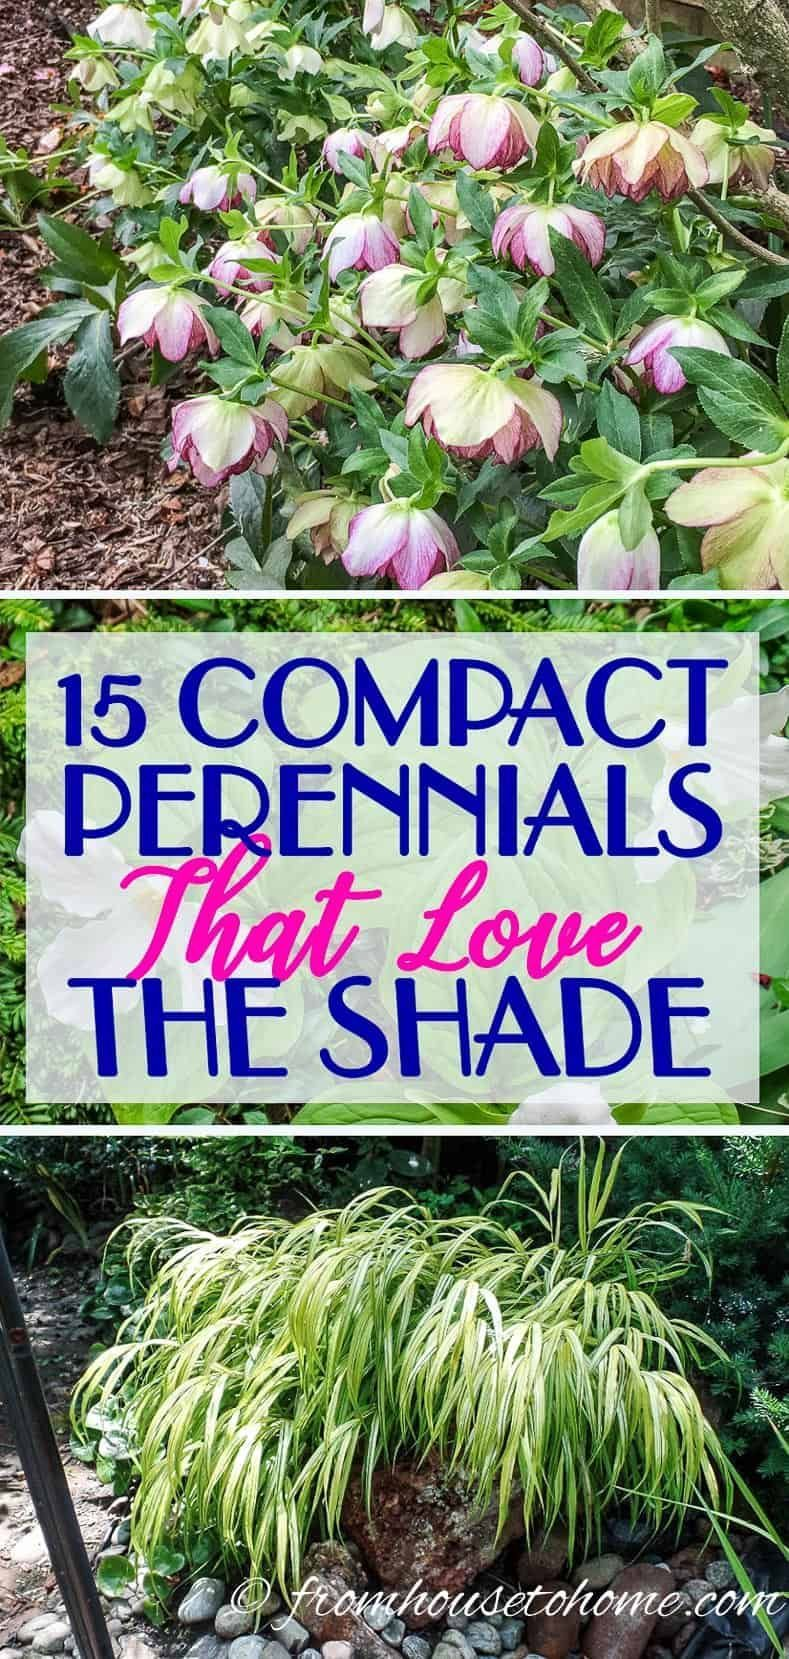 Stunning Perennial Ground Cover Plants That Thrive in the Shade 15 Stunning Perennials That Thrive in the Shade   These easy to grow shade perennials (like hellebores) are perfect for ground covers under bushes or trees to will help keep the weeds down in your garden.15 Stunning Perennials That Thrive...